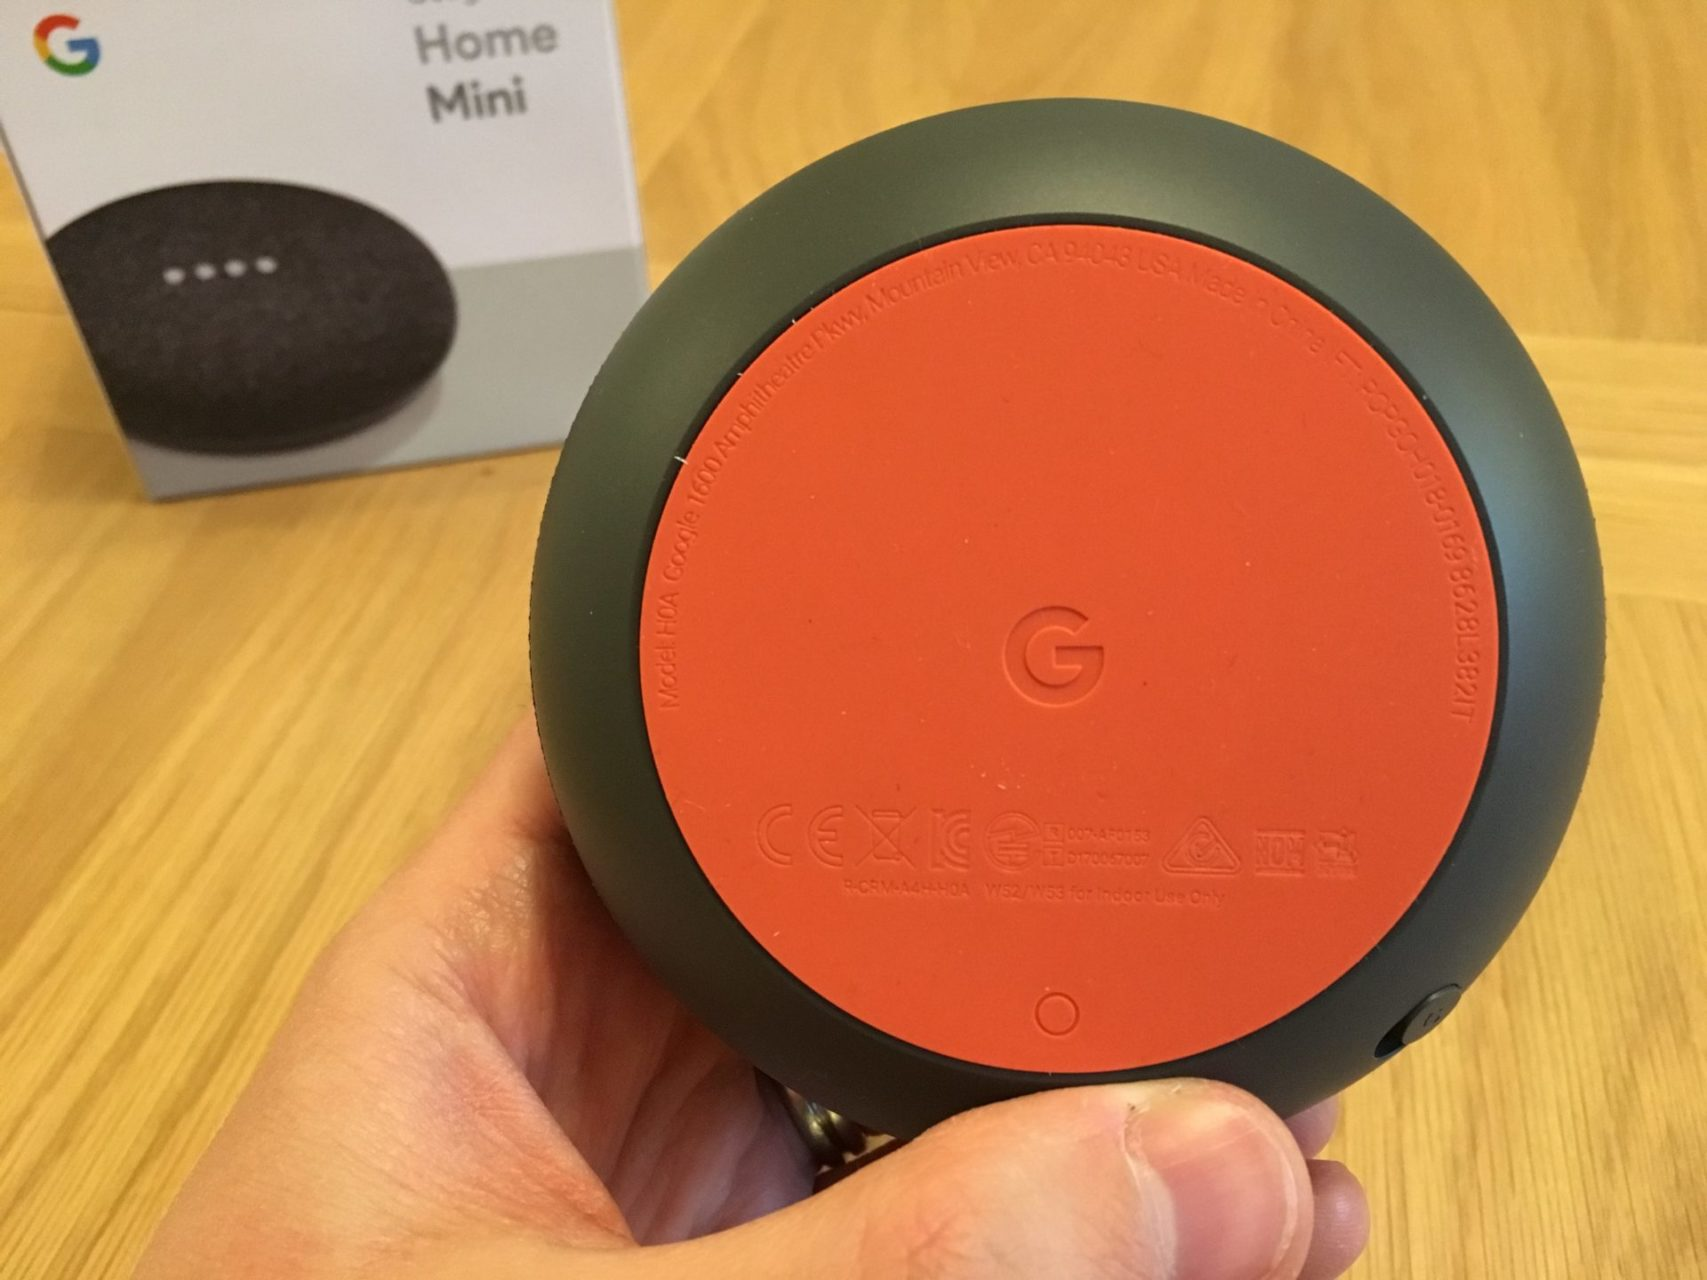 Google Home Mini Bottom